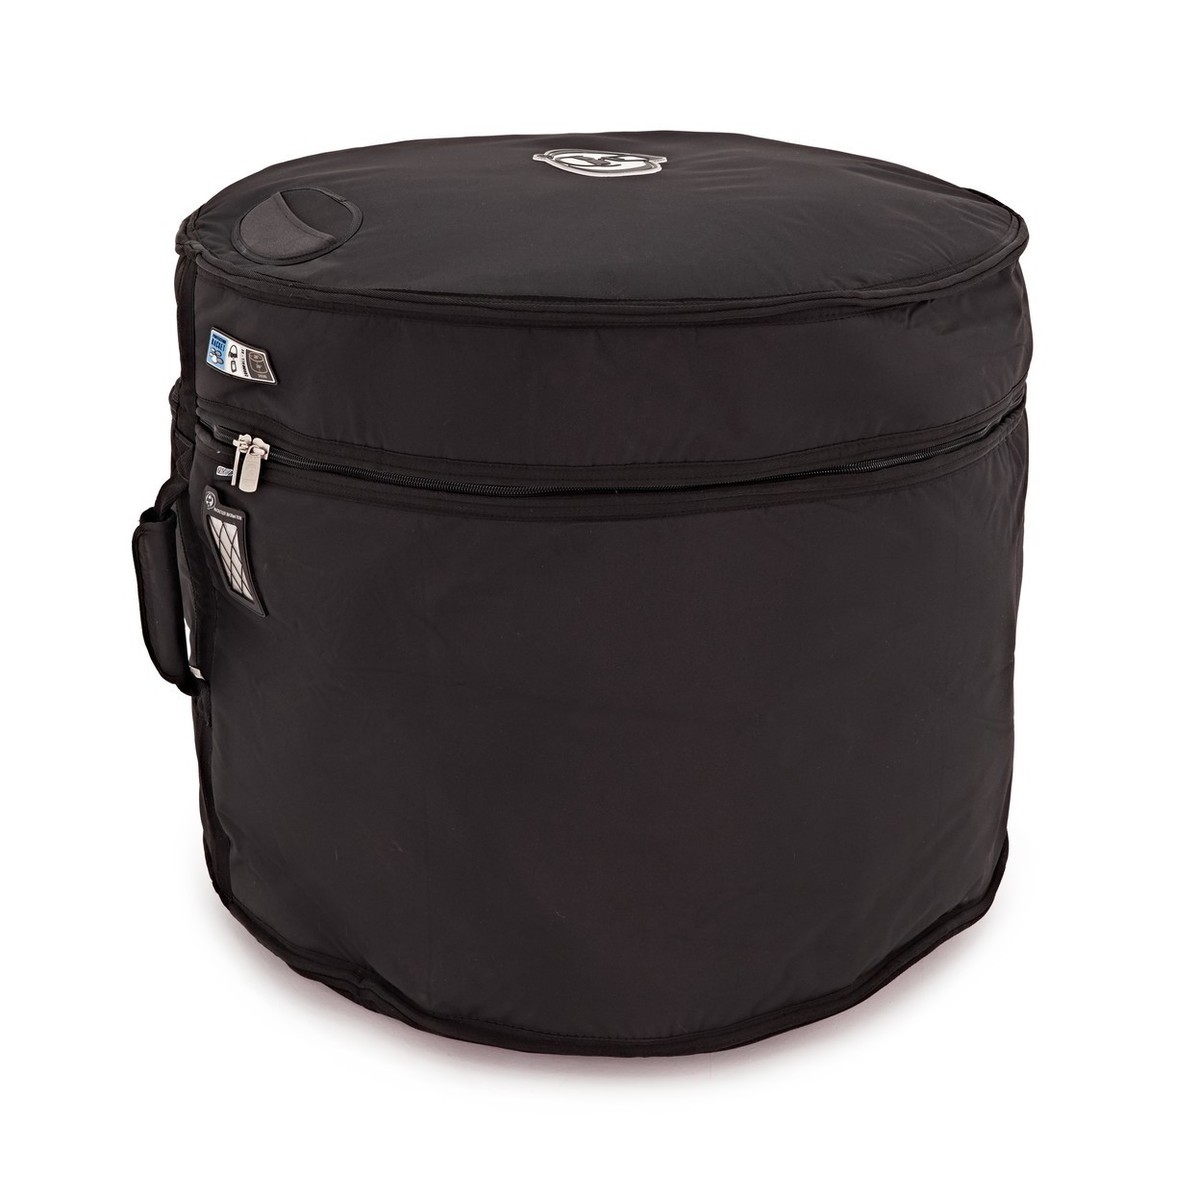 protection racket 26 39 39 x 14 39 39 bass drum case at gear4music. Black Bedroom Furniture Sets. Home Design Ideas